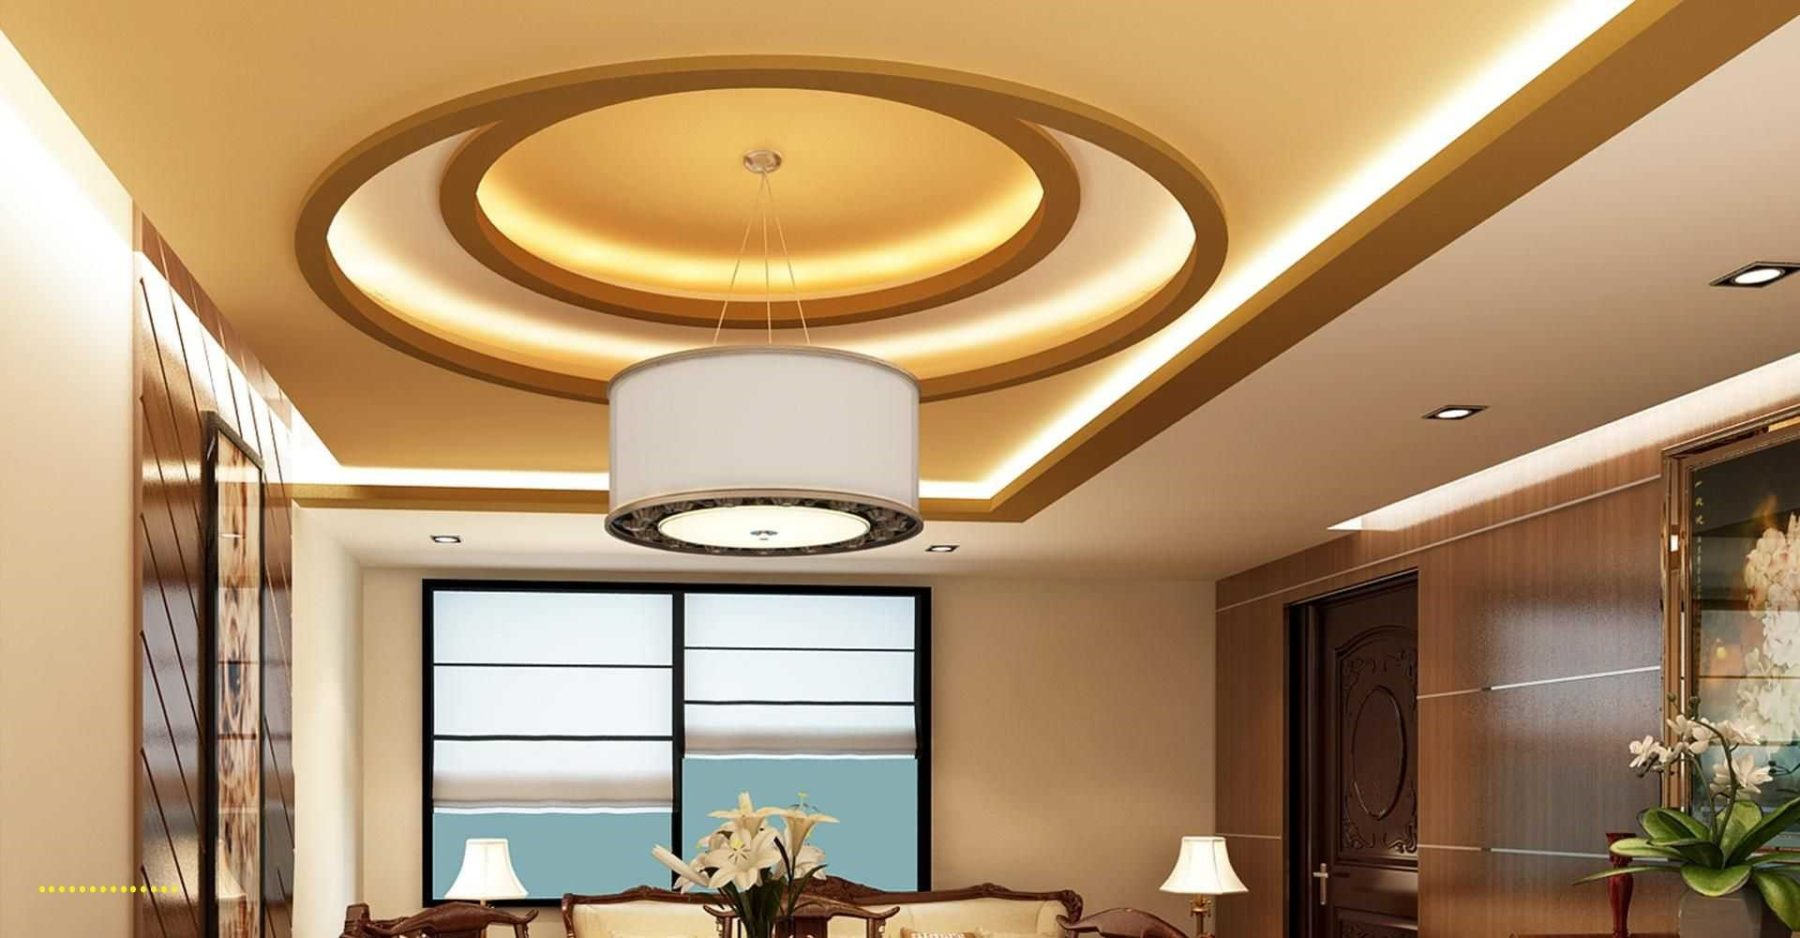 Wooden false ceilings - Taskmasters, Dubai